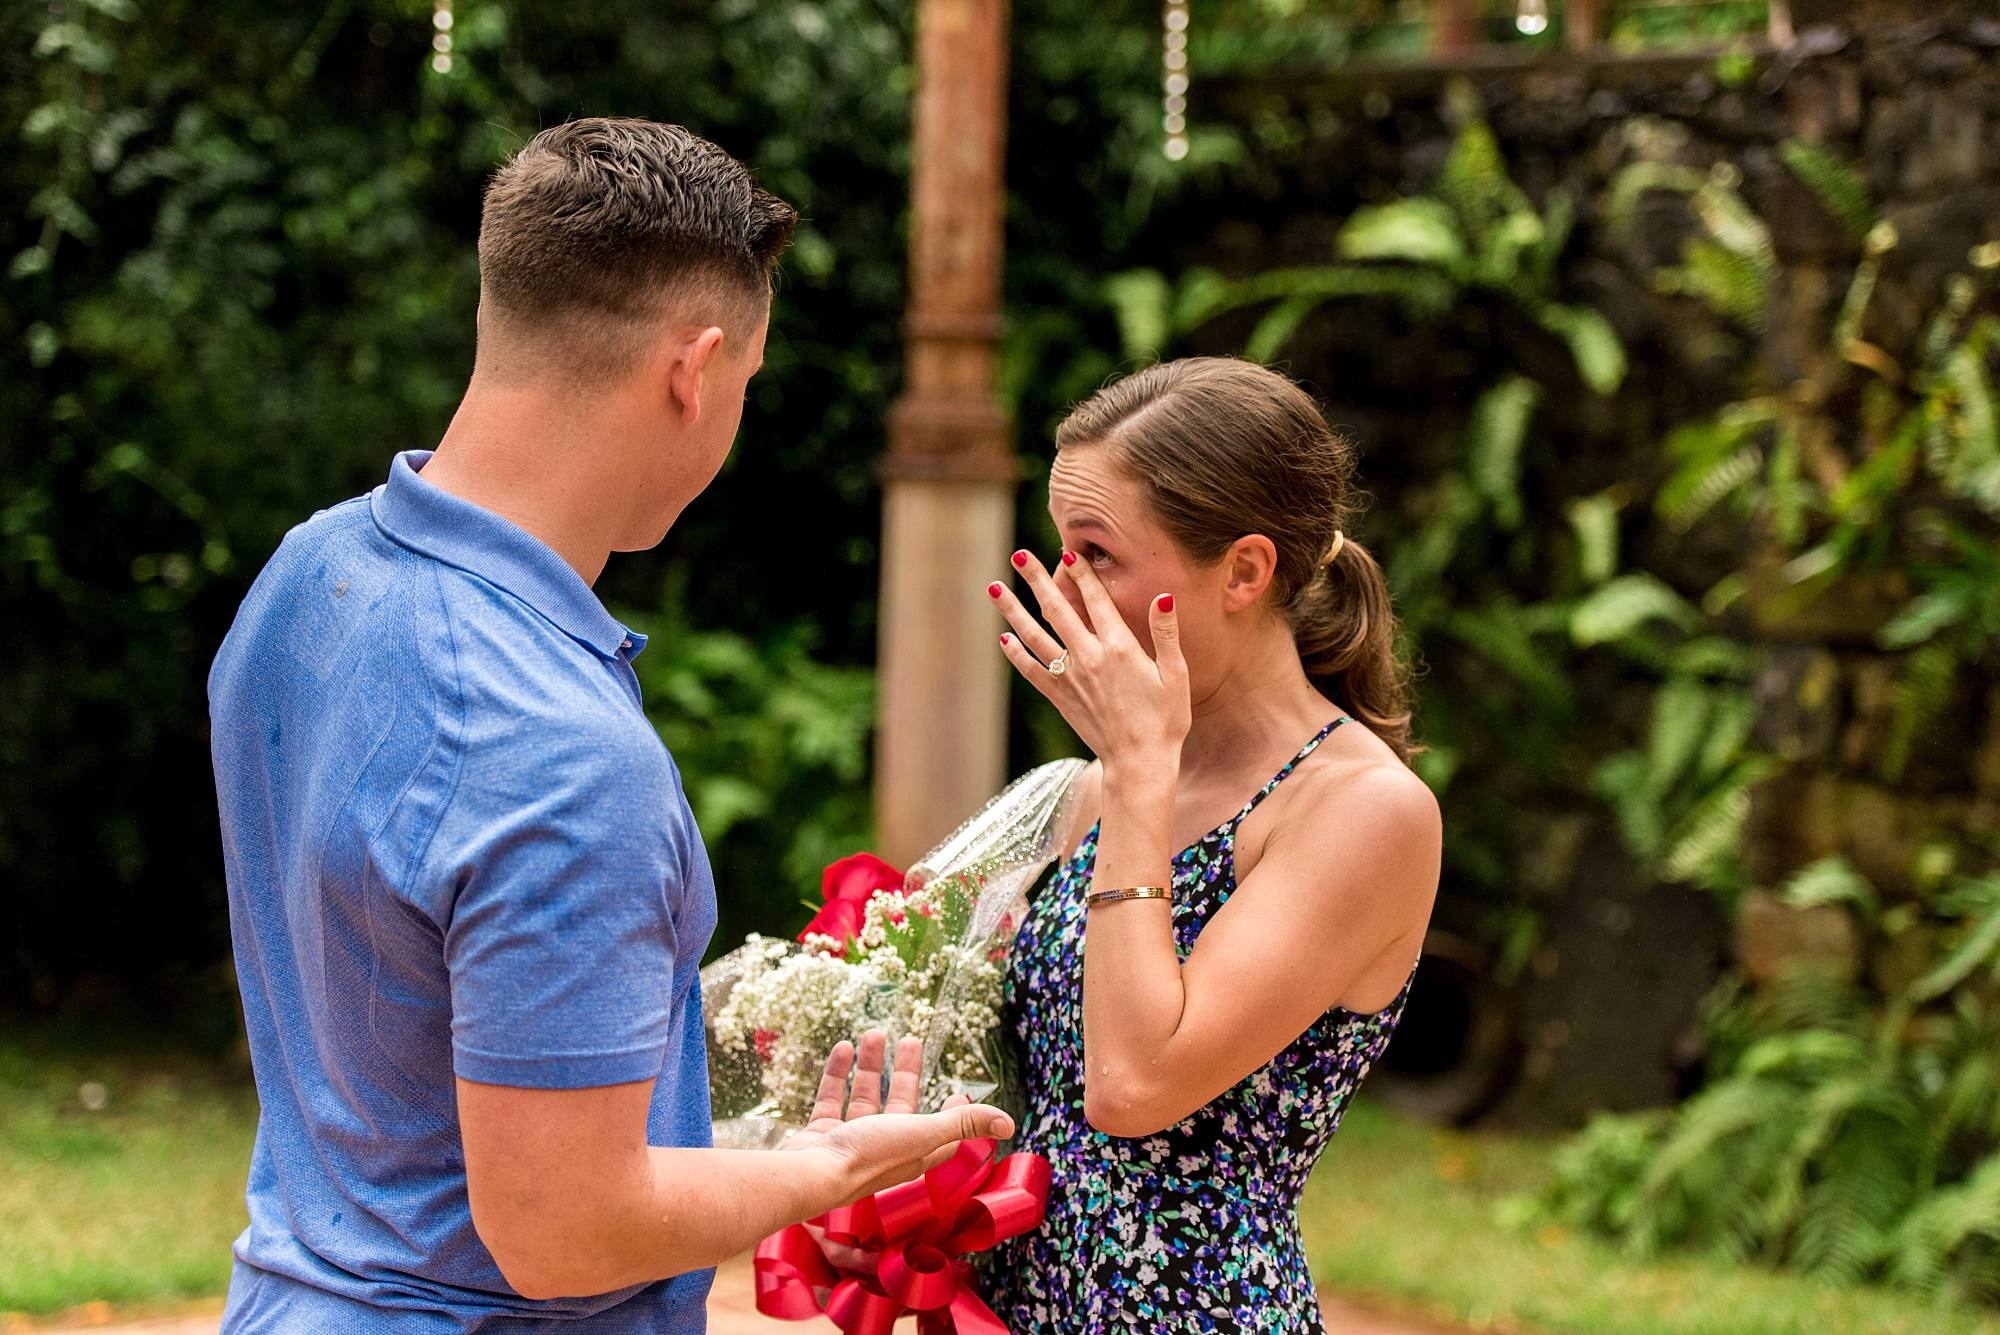 man giving woman flowers, woman wiping away tears after being proposed to